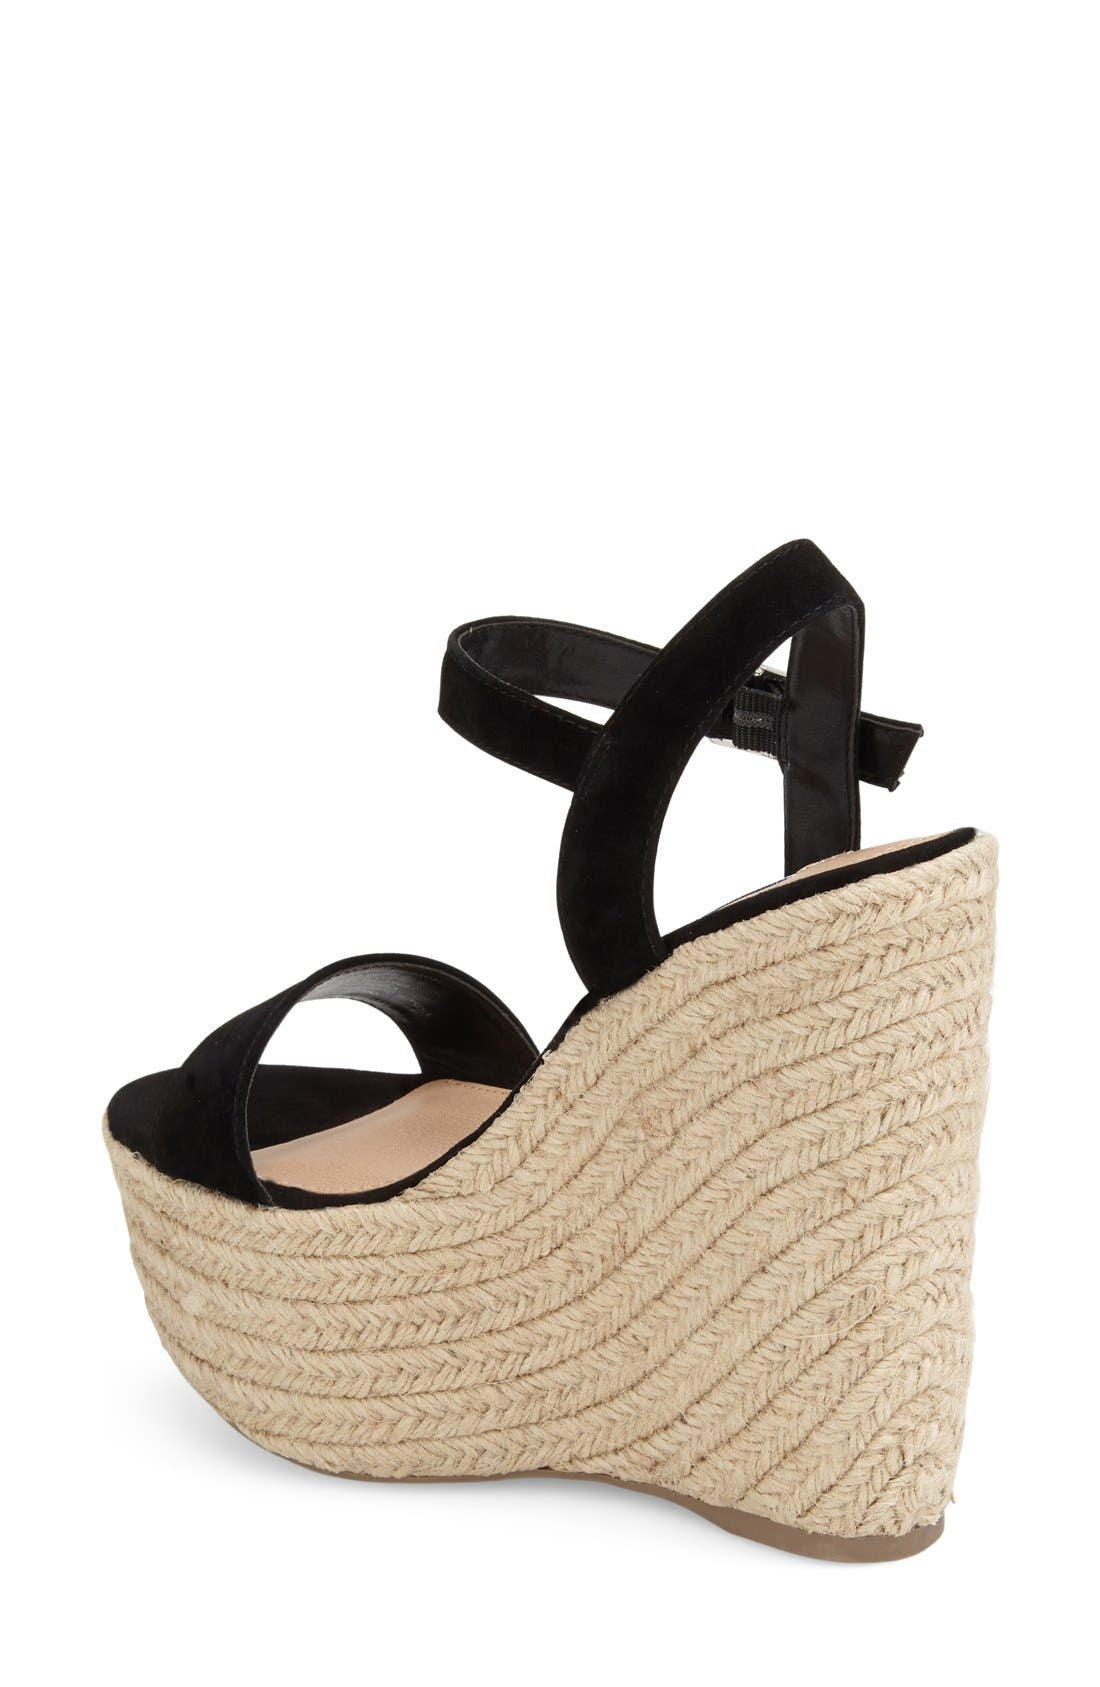 Alternate Image 2  - Steve Madden 'Alyssa' Espadrille Wedge Sandal (Women)